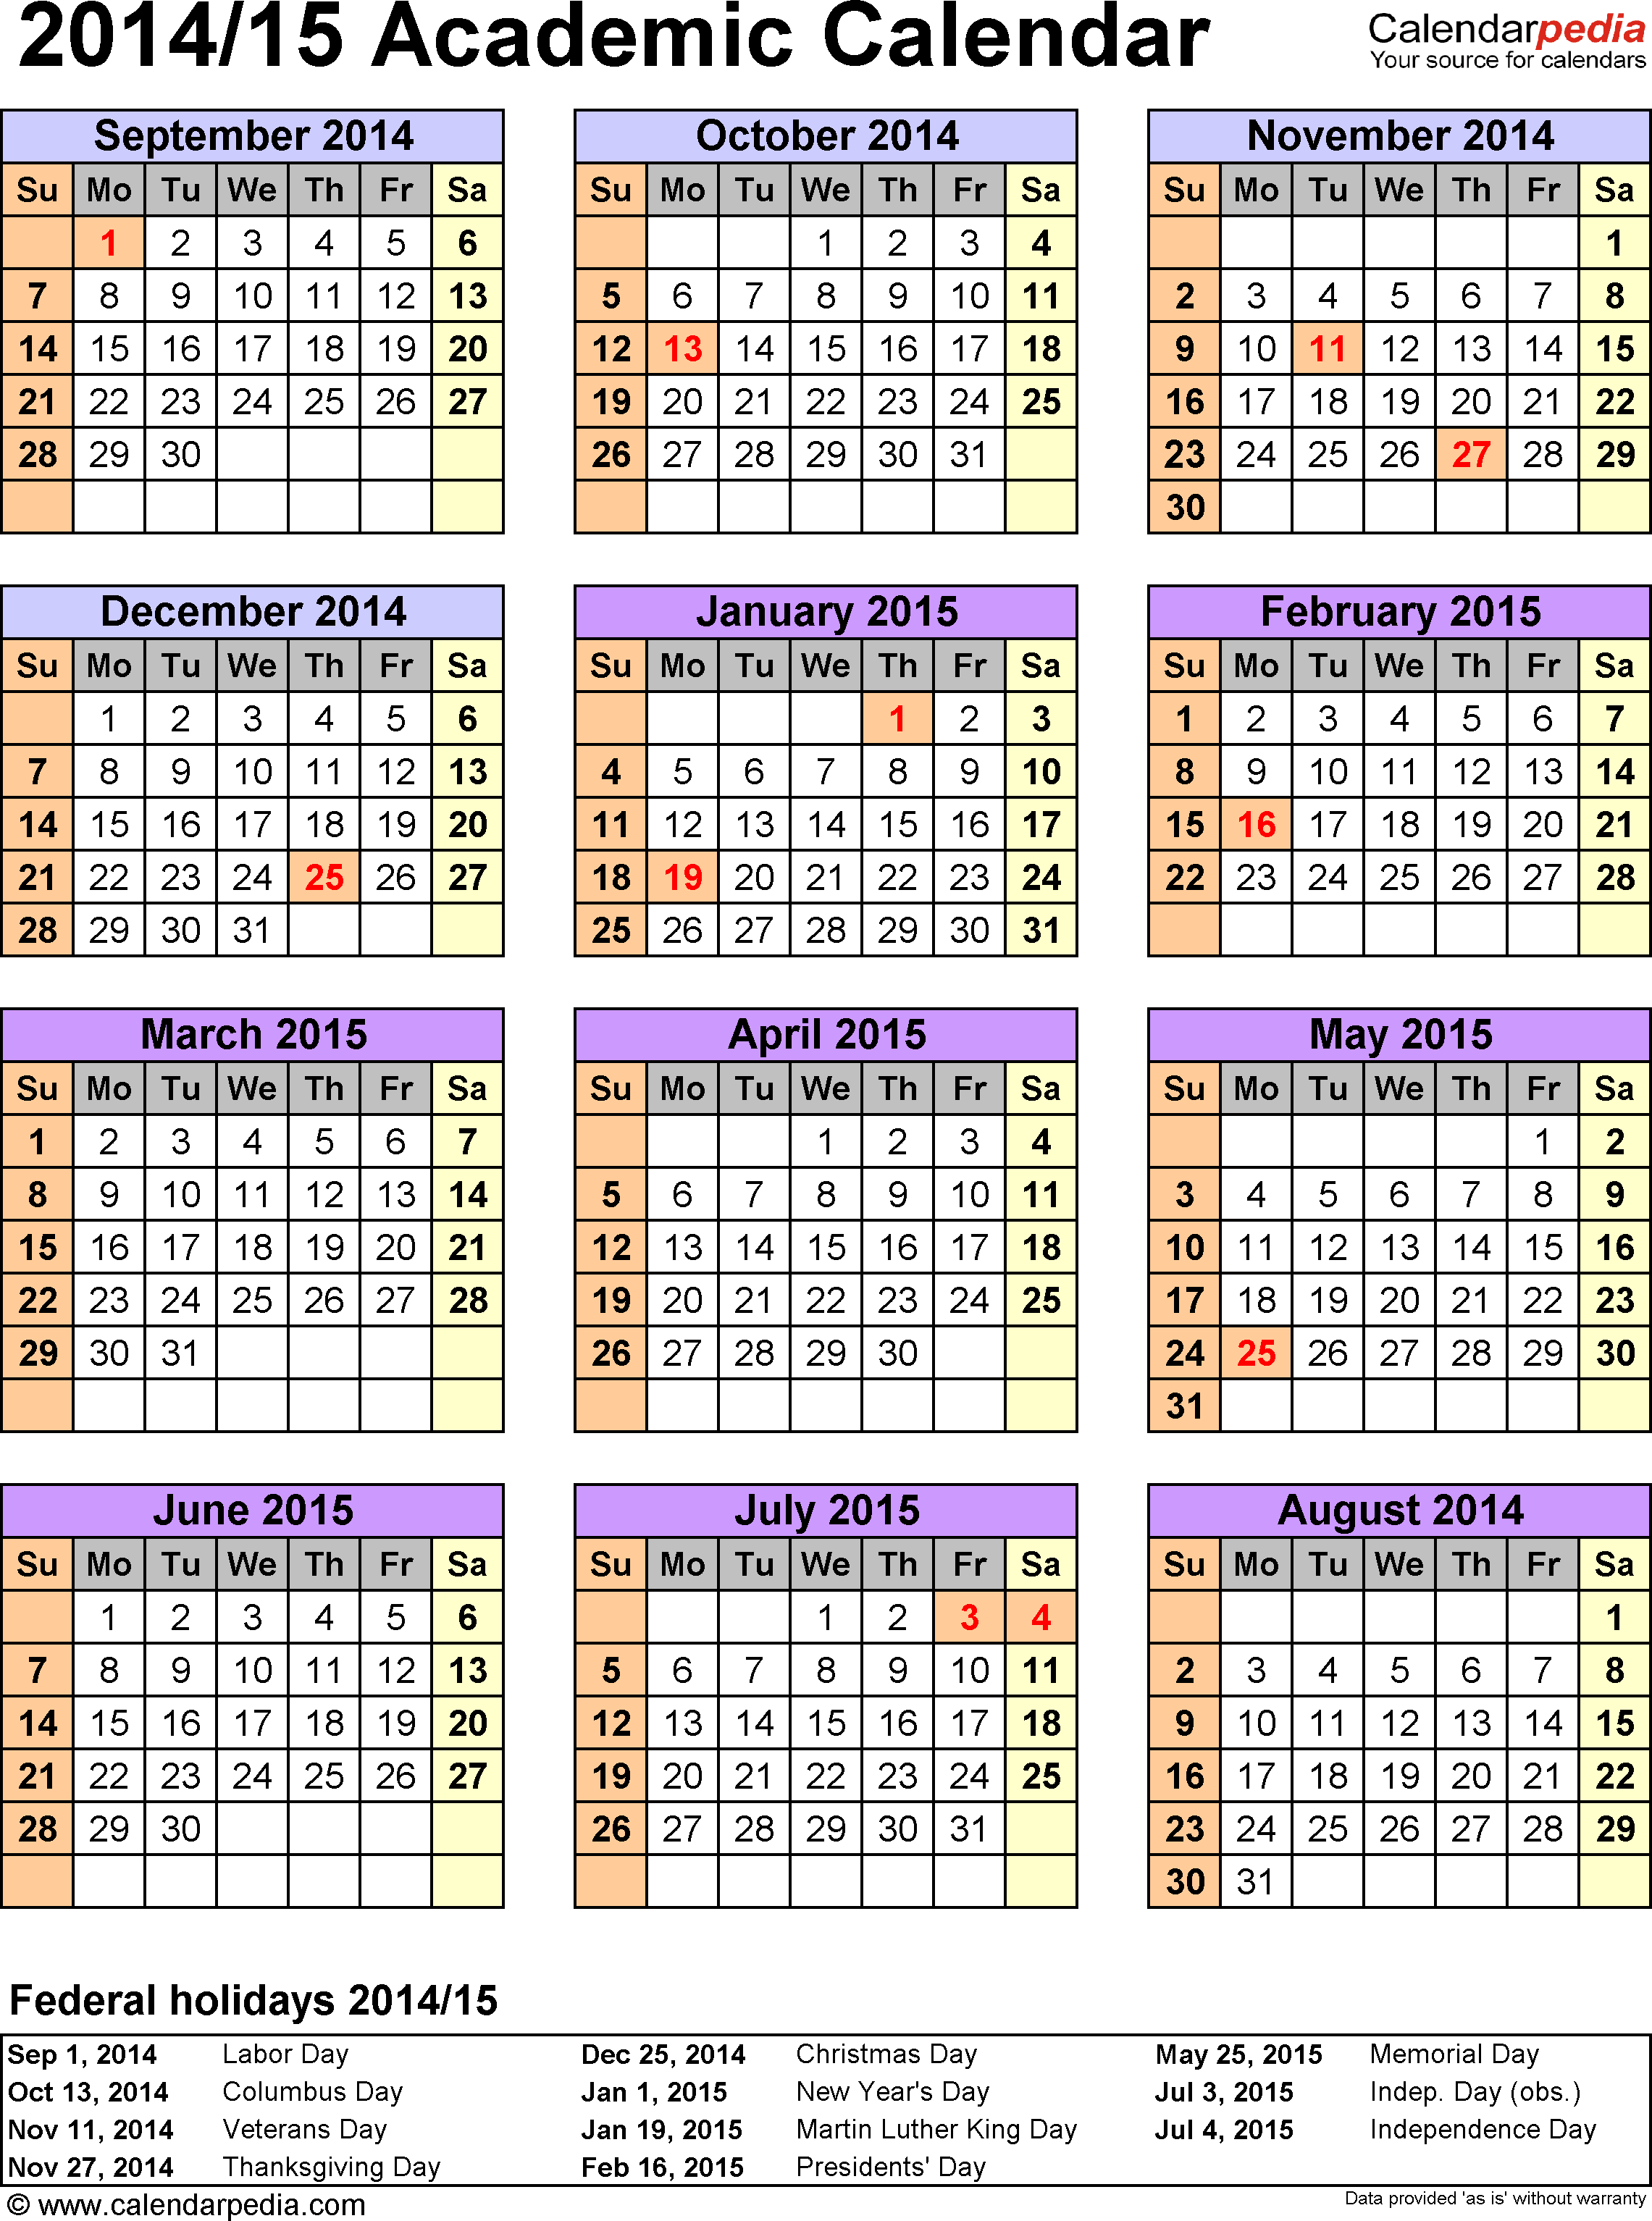 Academic Calendar Cds | Department Of Education Regarding Calendar Year 2021 Department Of Education